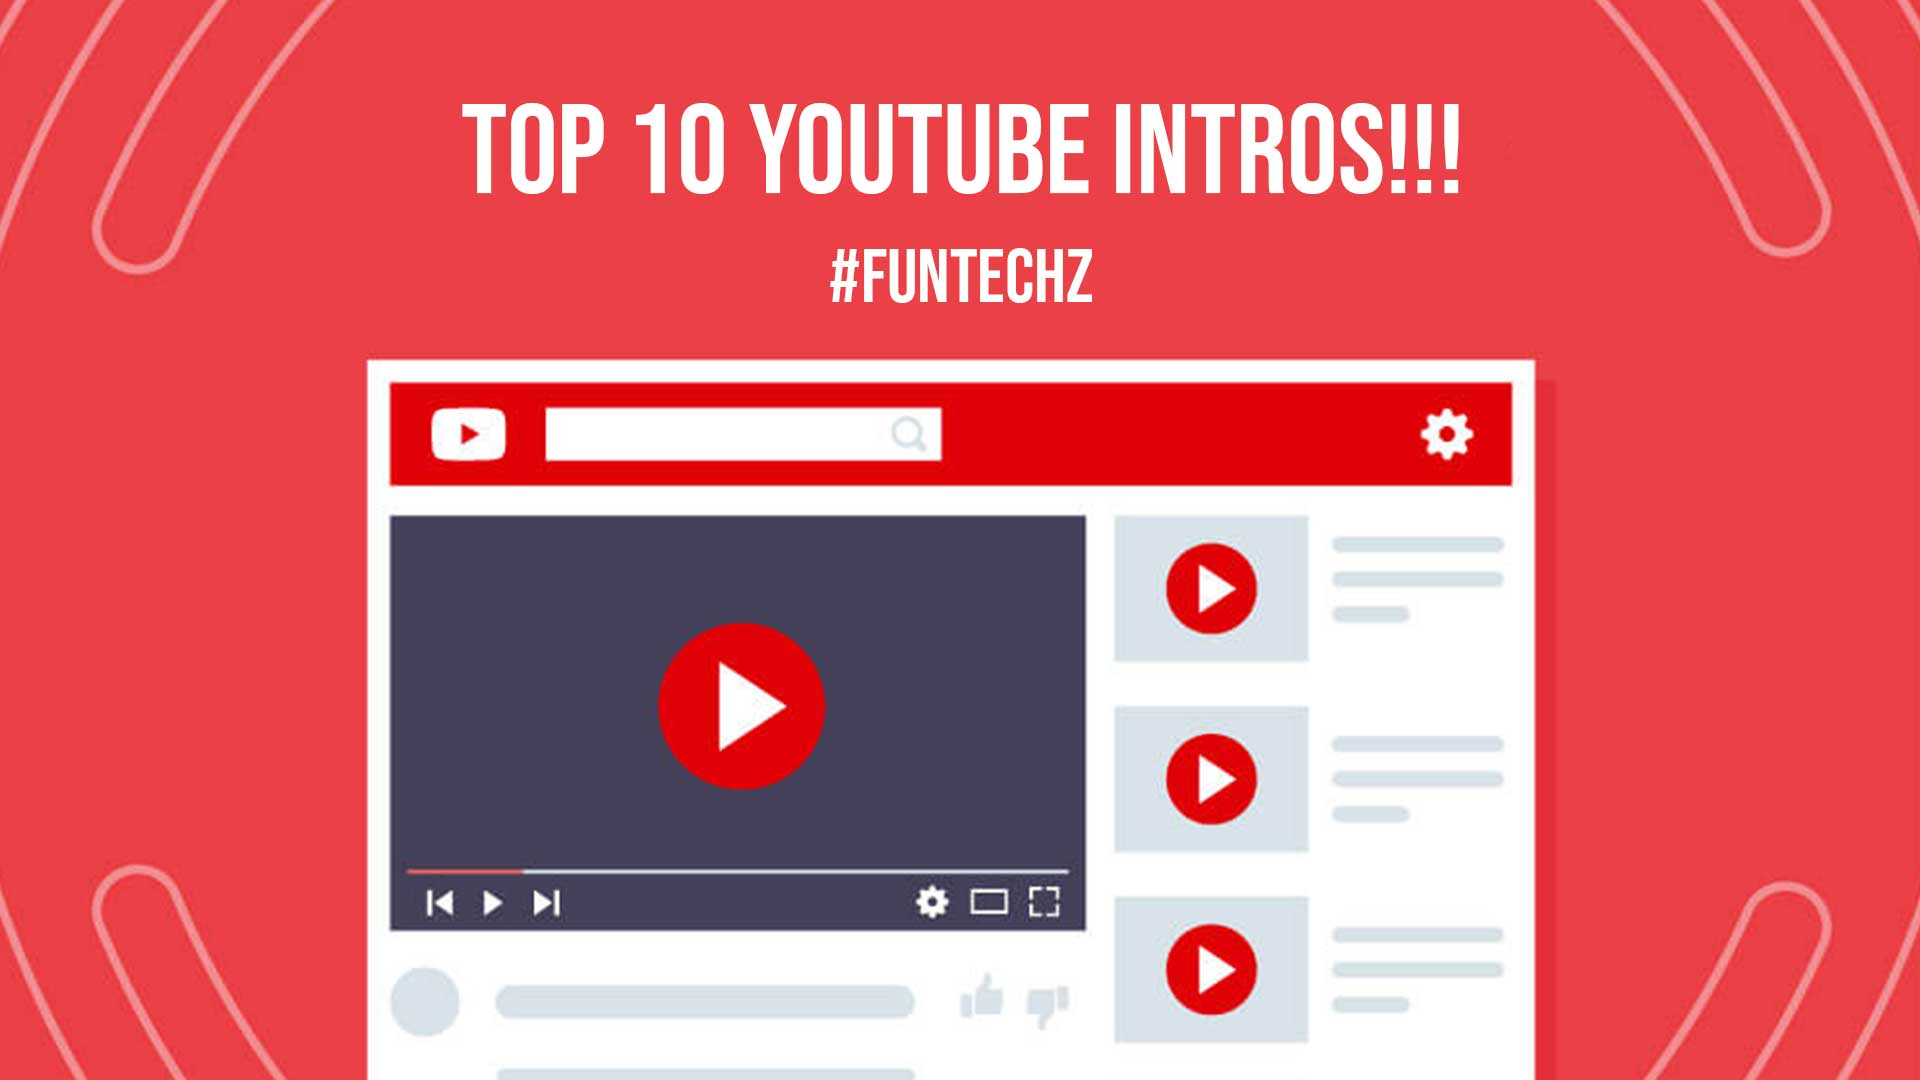 Top 10 YouTube Intros